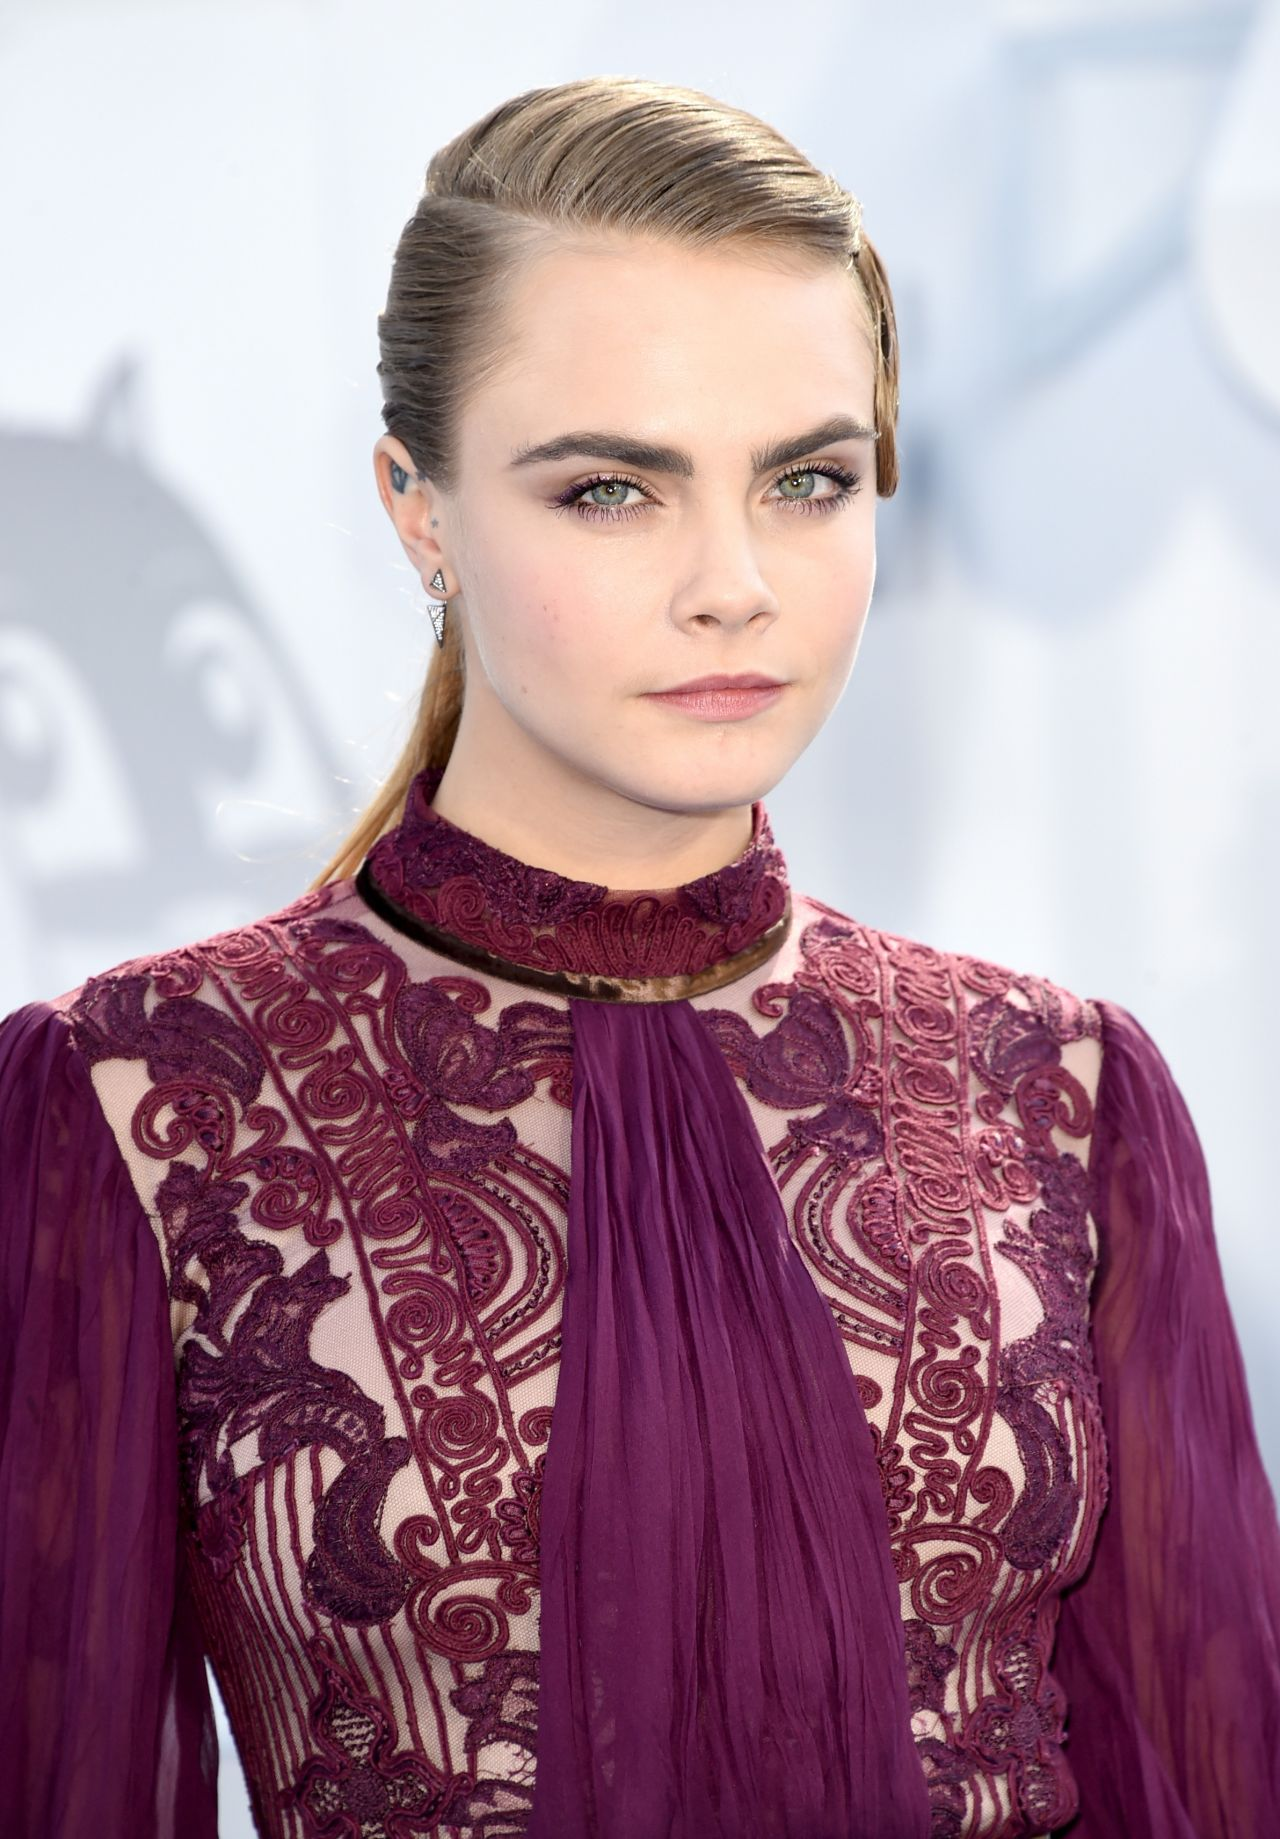 cara-delevingne-2015-mtv-movie-awards-in-los-angeles_